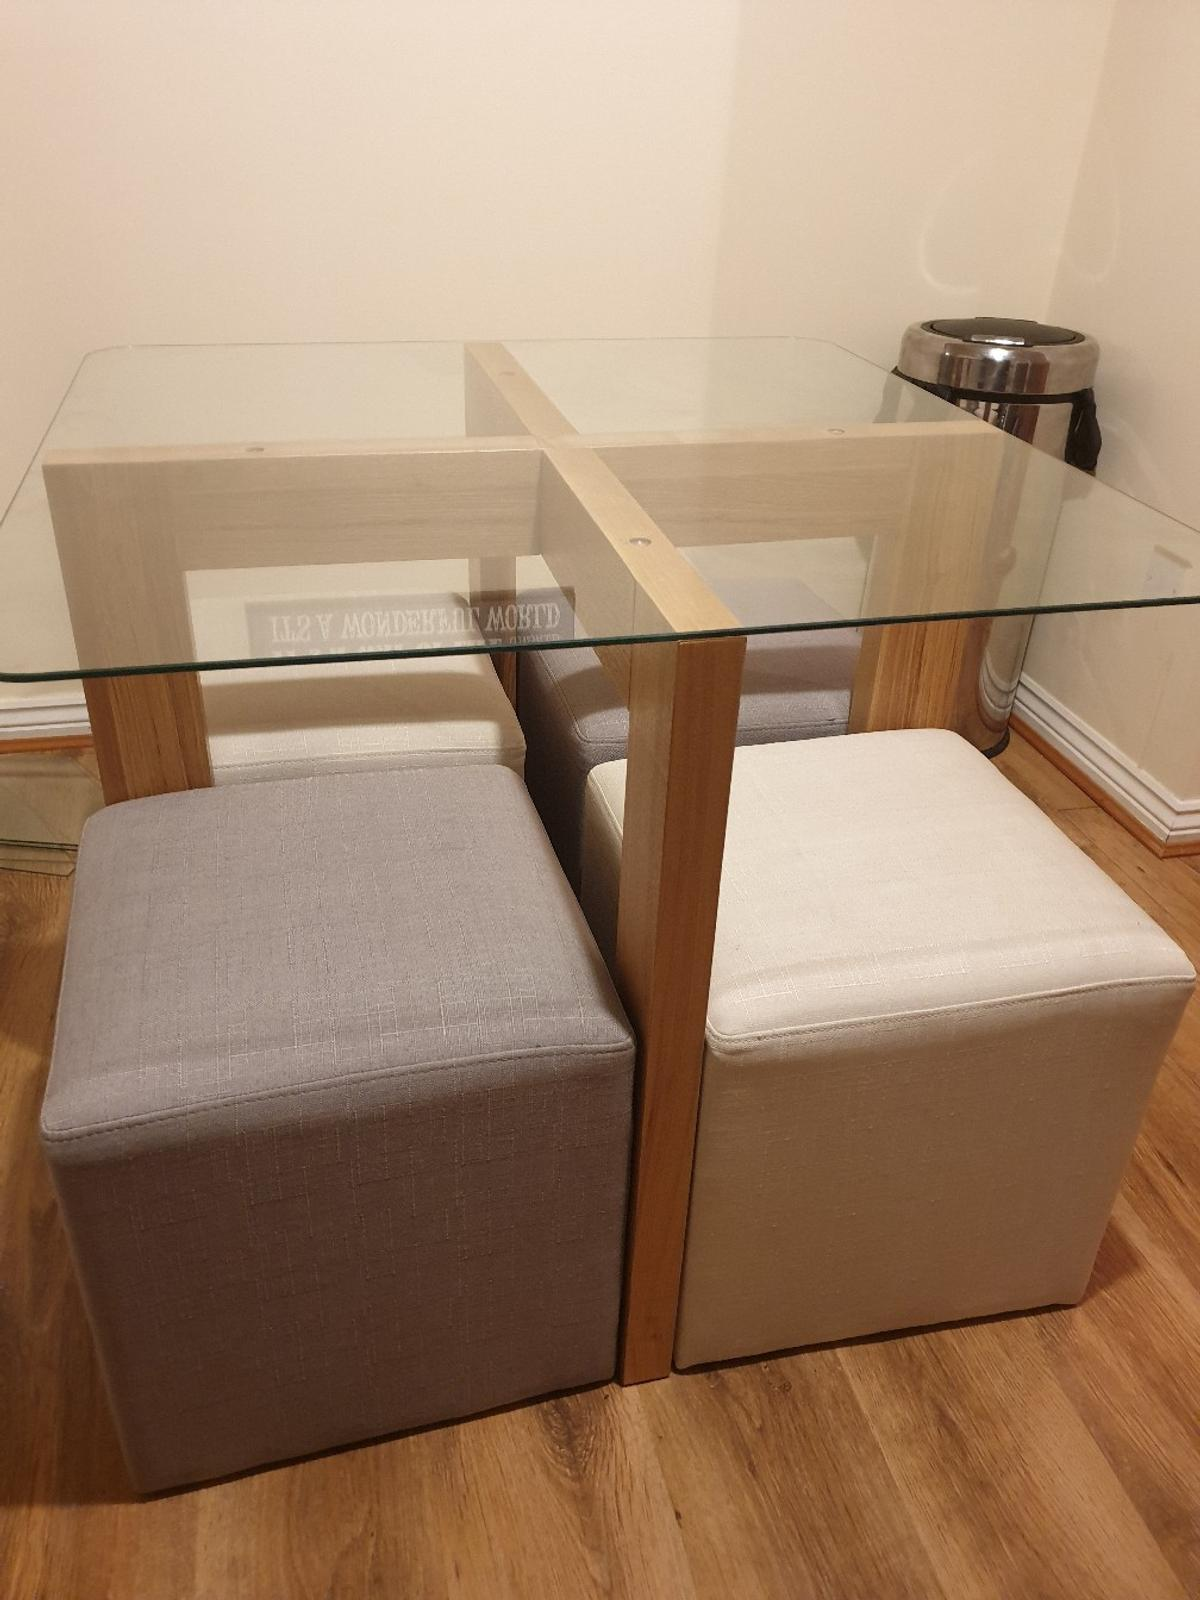 Square Glass Dining Table With 4 Stools In Dy4 Sandwell For 100 00 For Sale Shpock